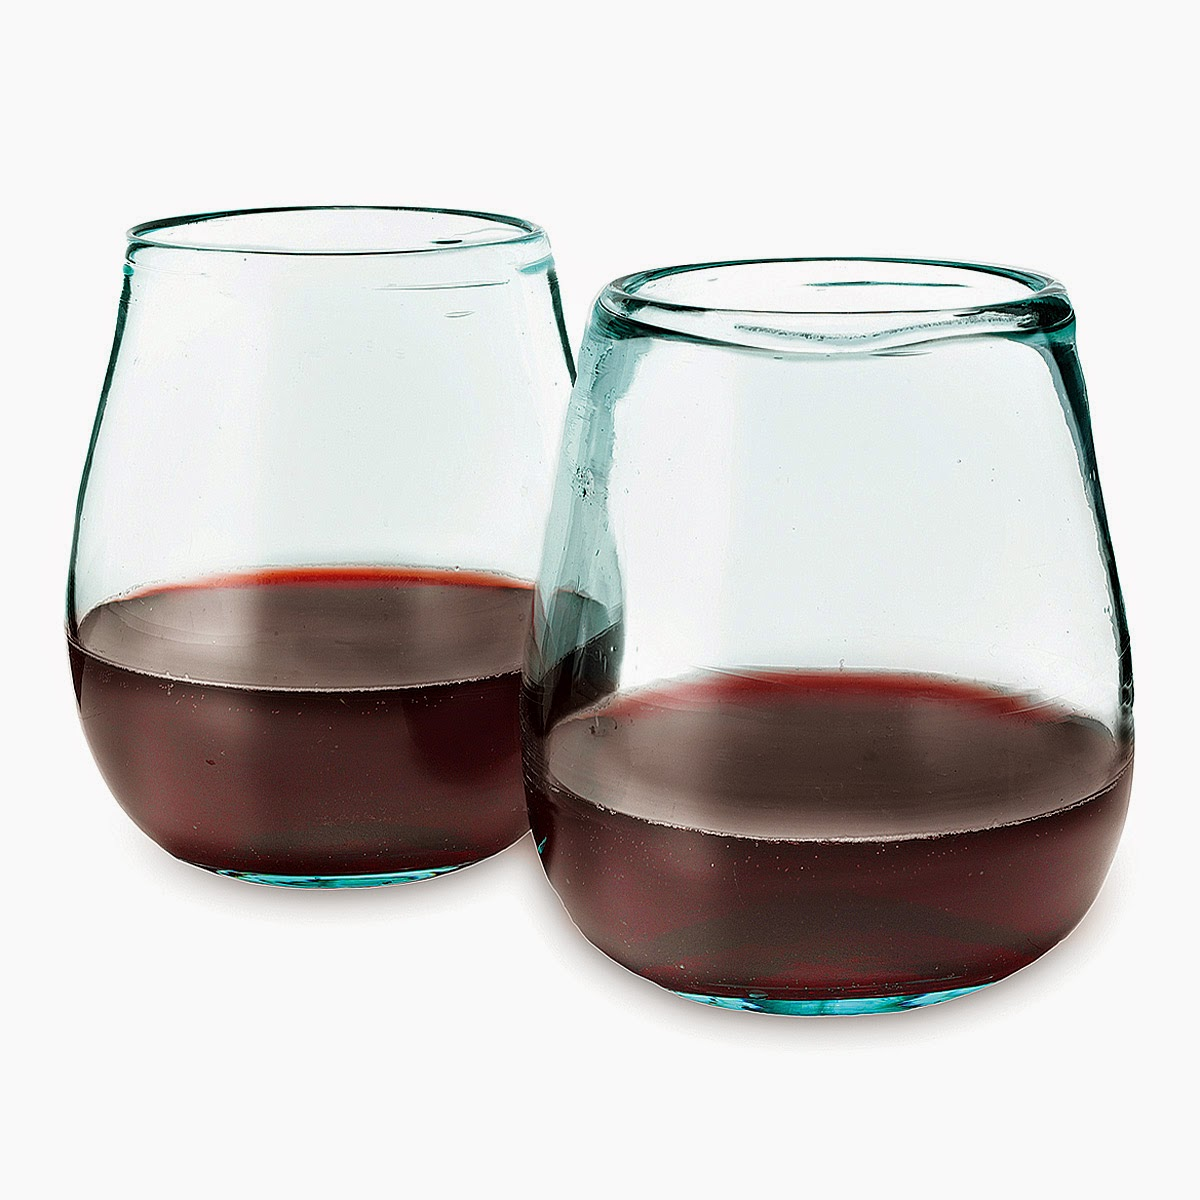 http://www.uncommongoods.com/product/recycled-wine-glasses